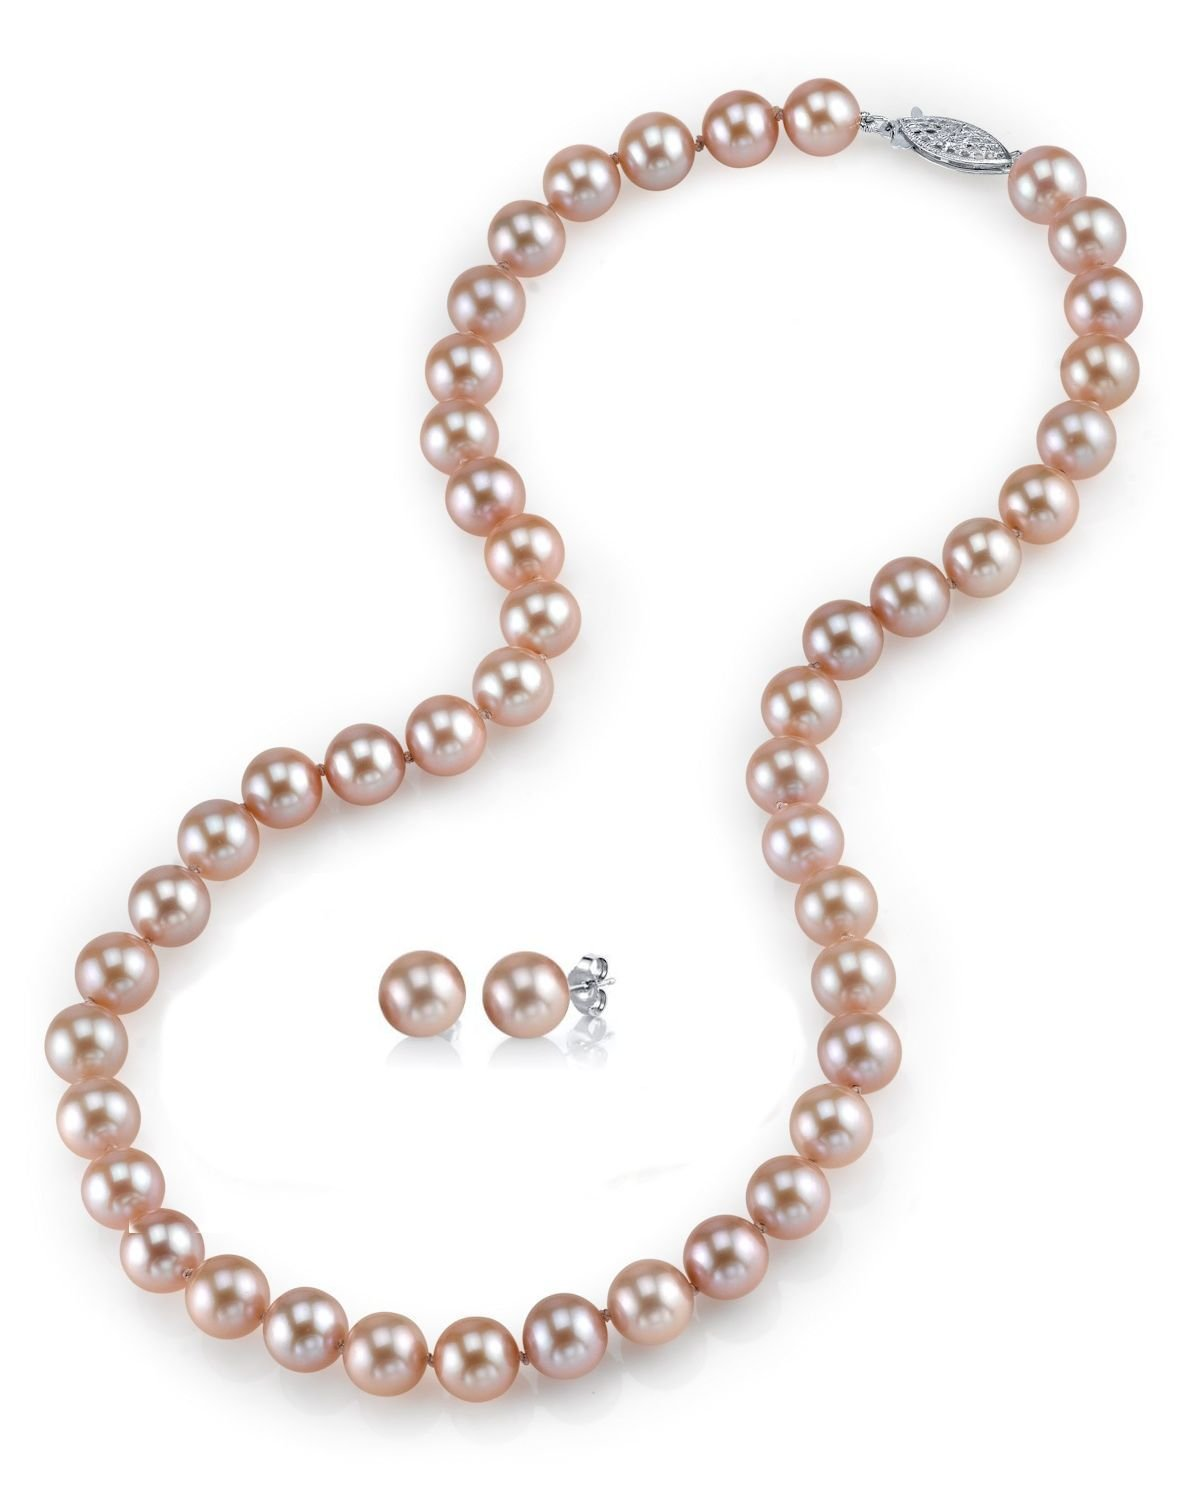 8 9mm Pink Freshwater Pearl Necklace Earrings